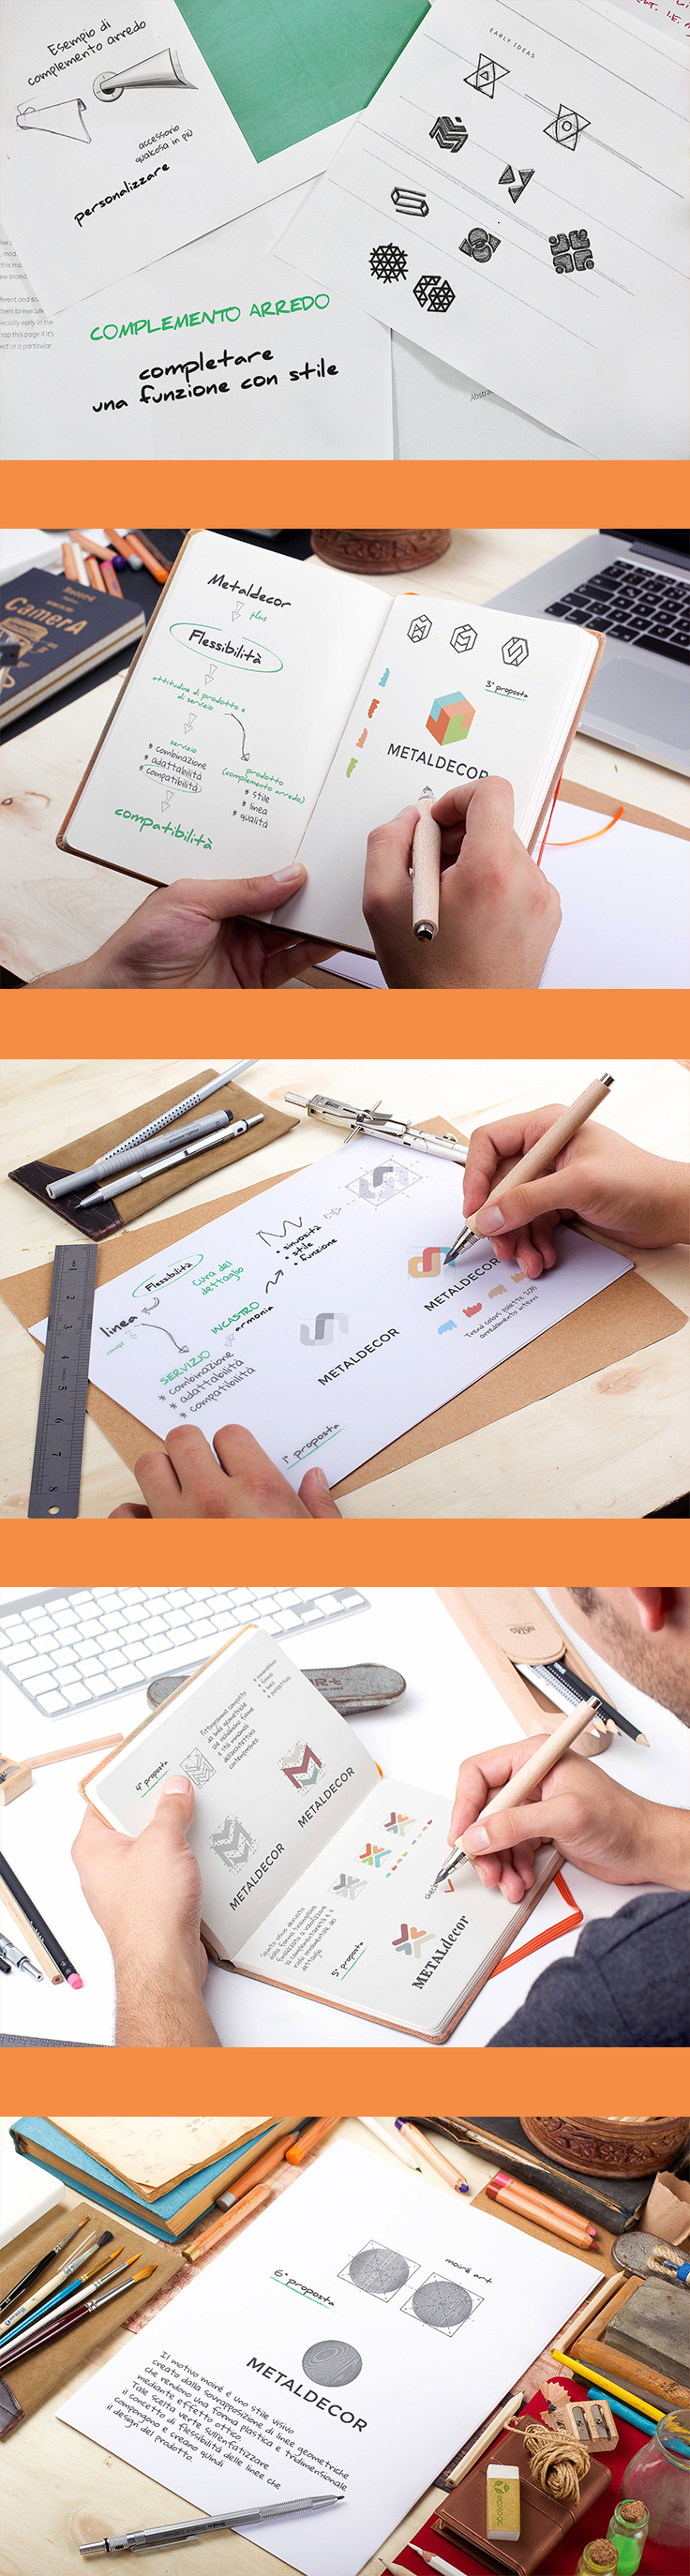 From Brainstorming to Brand Definition - Corporate Logo Design